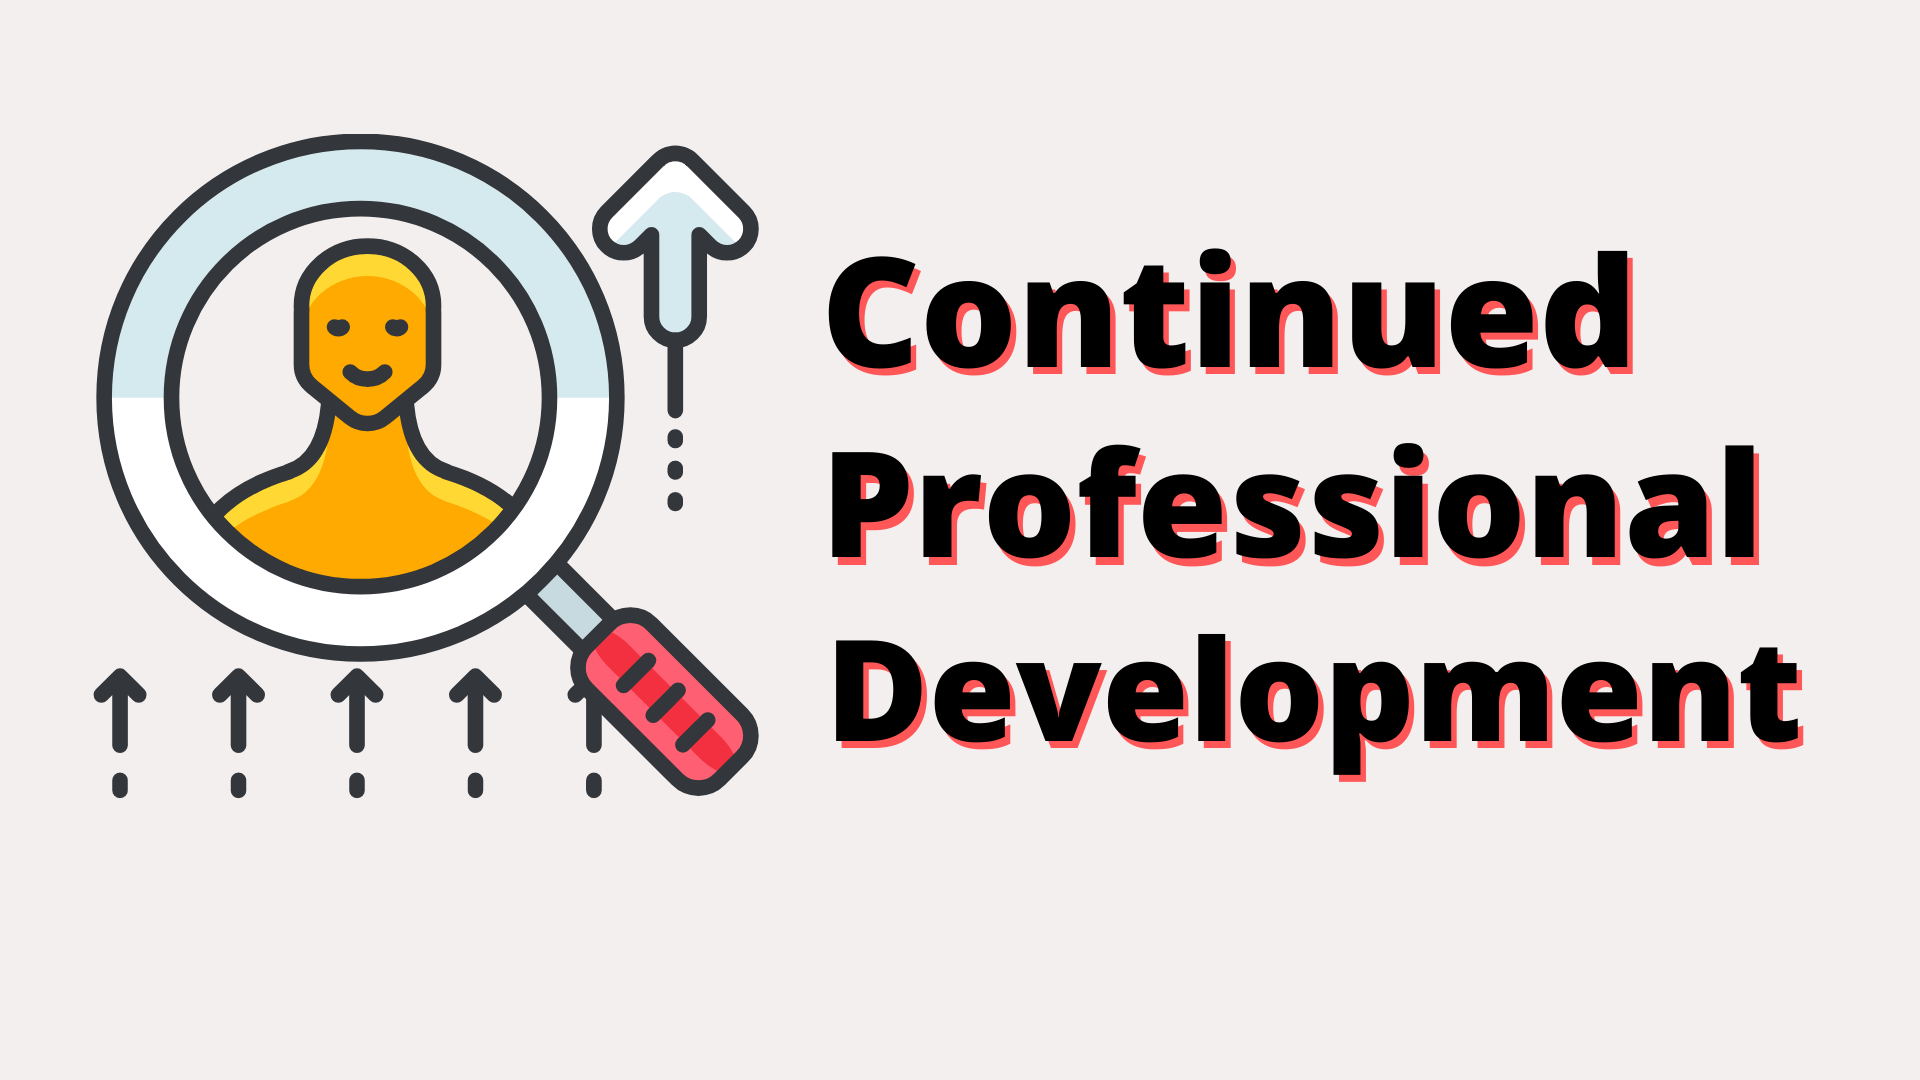 Growing the Industry with Continued Professional Development